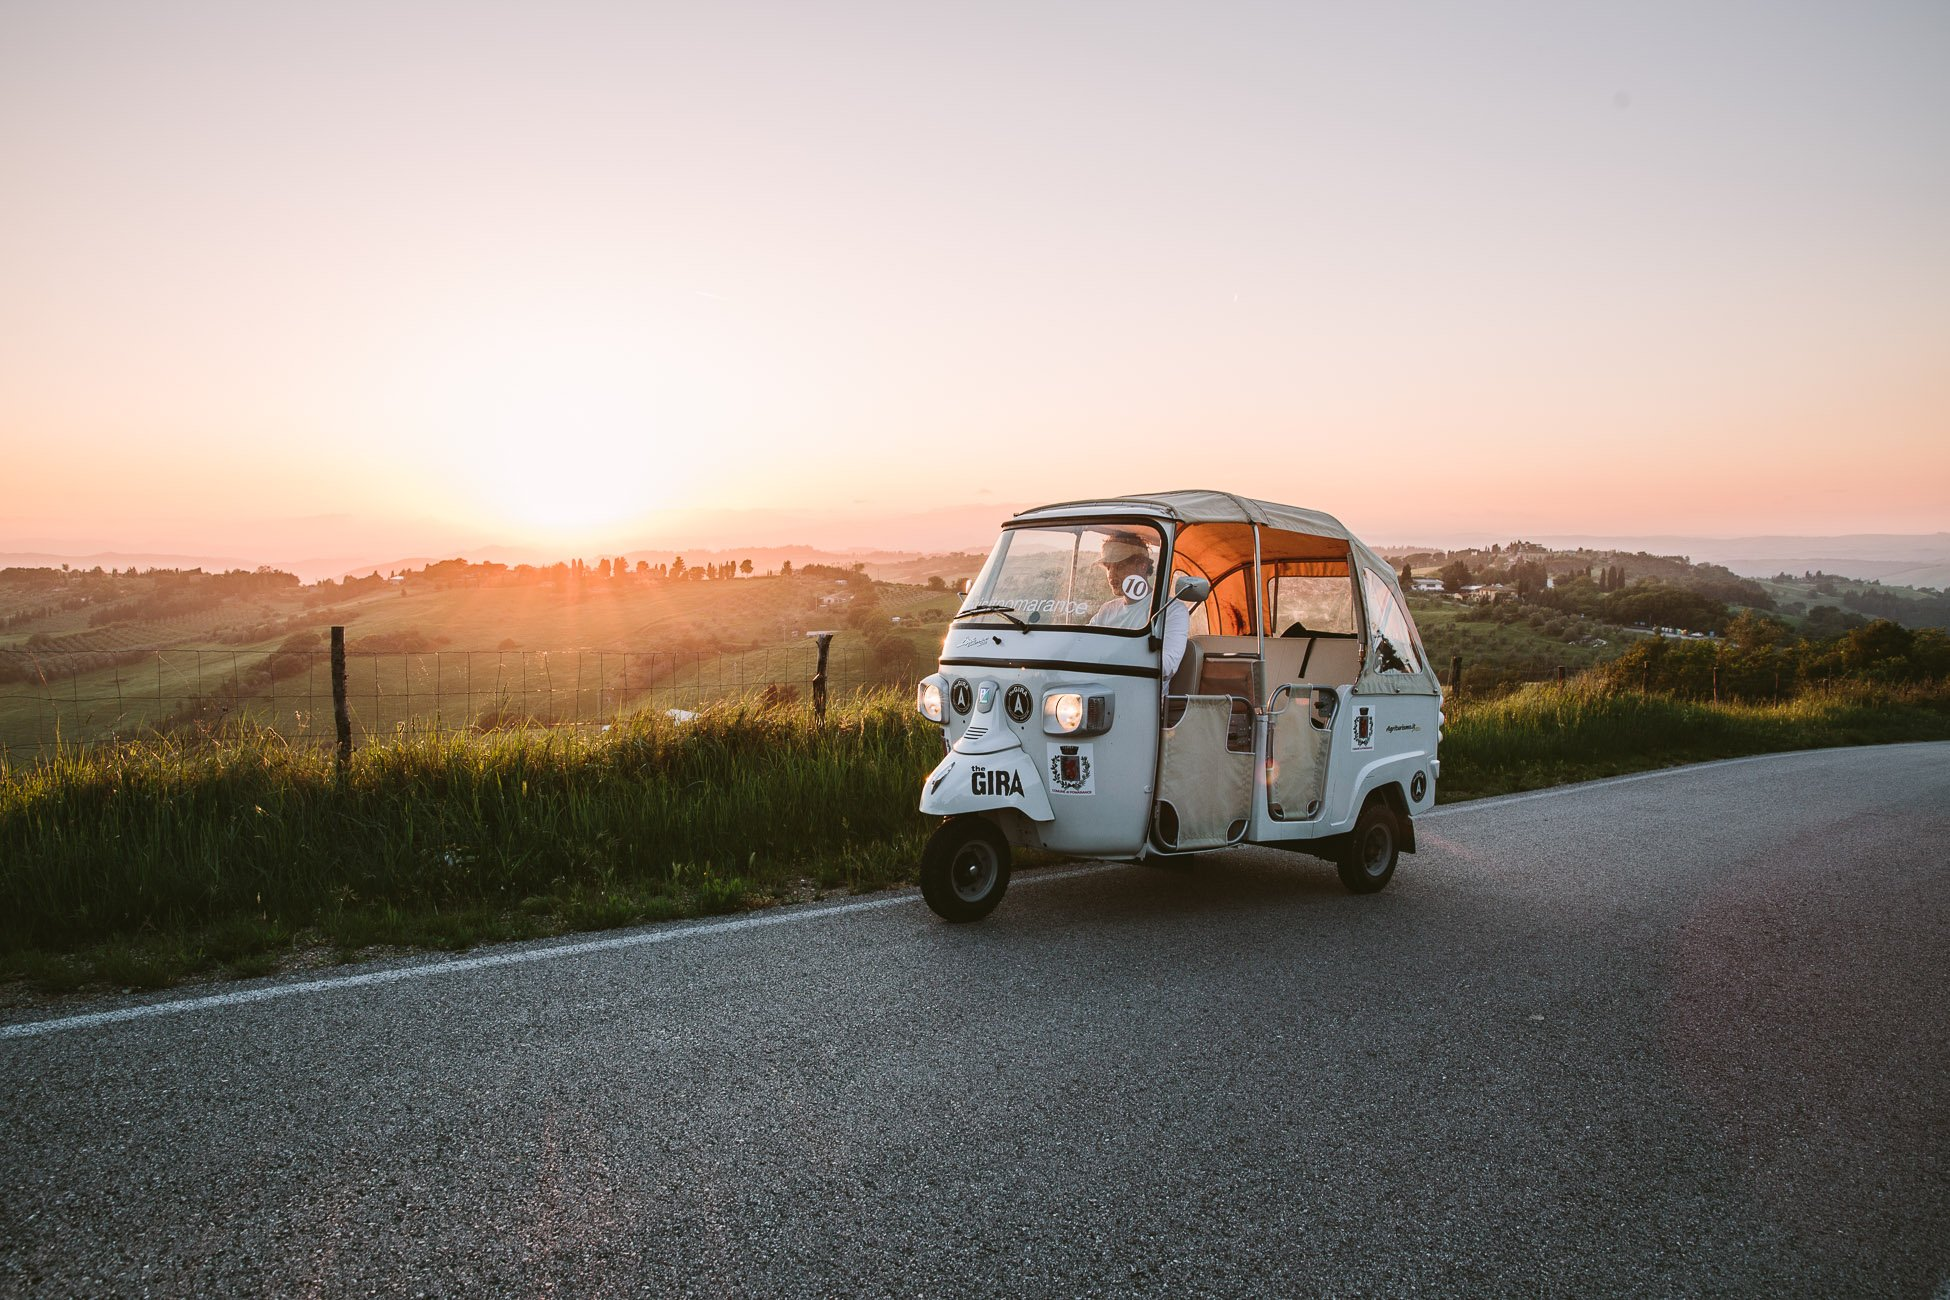 The Gira Tuk-Tuk in Pomarance Tuscany